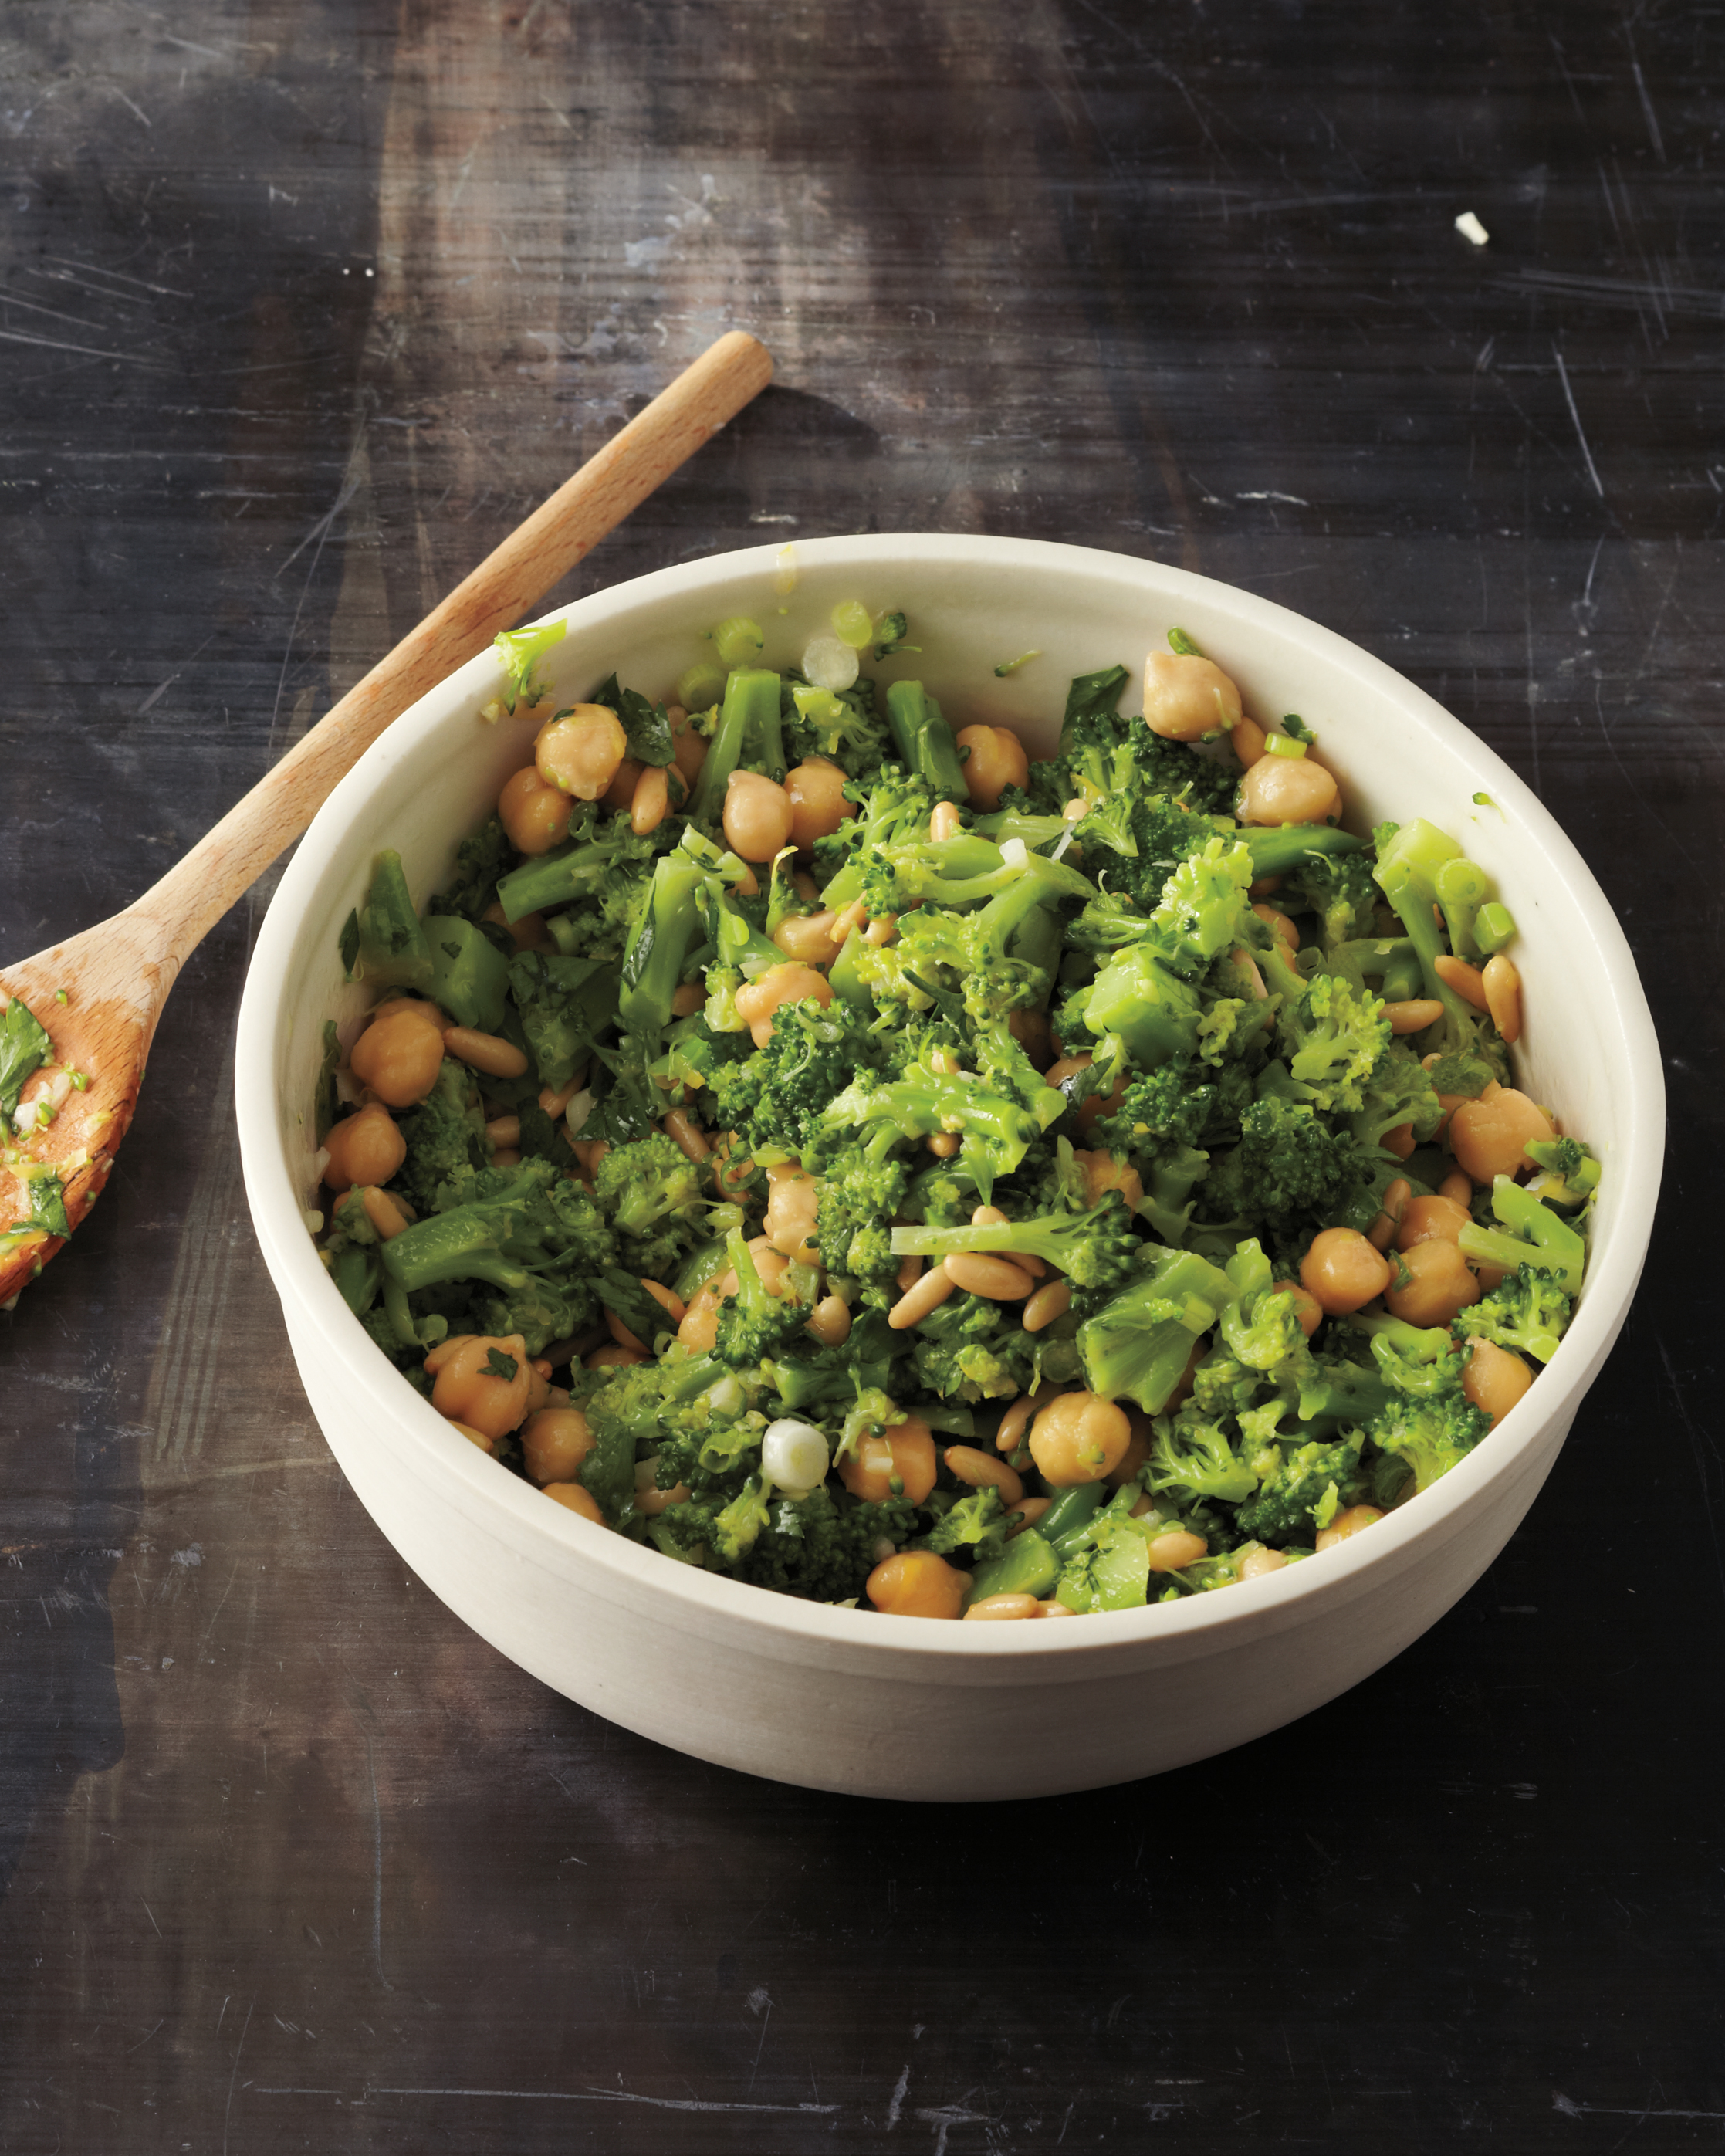 Or Try This: Broccoli and Chickpea Salad